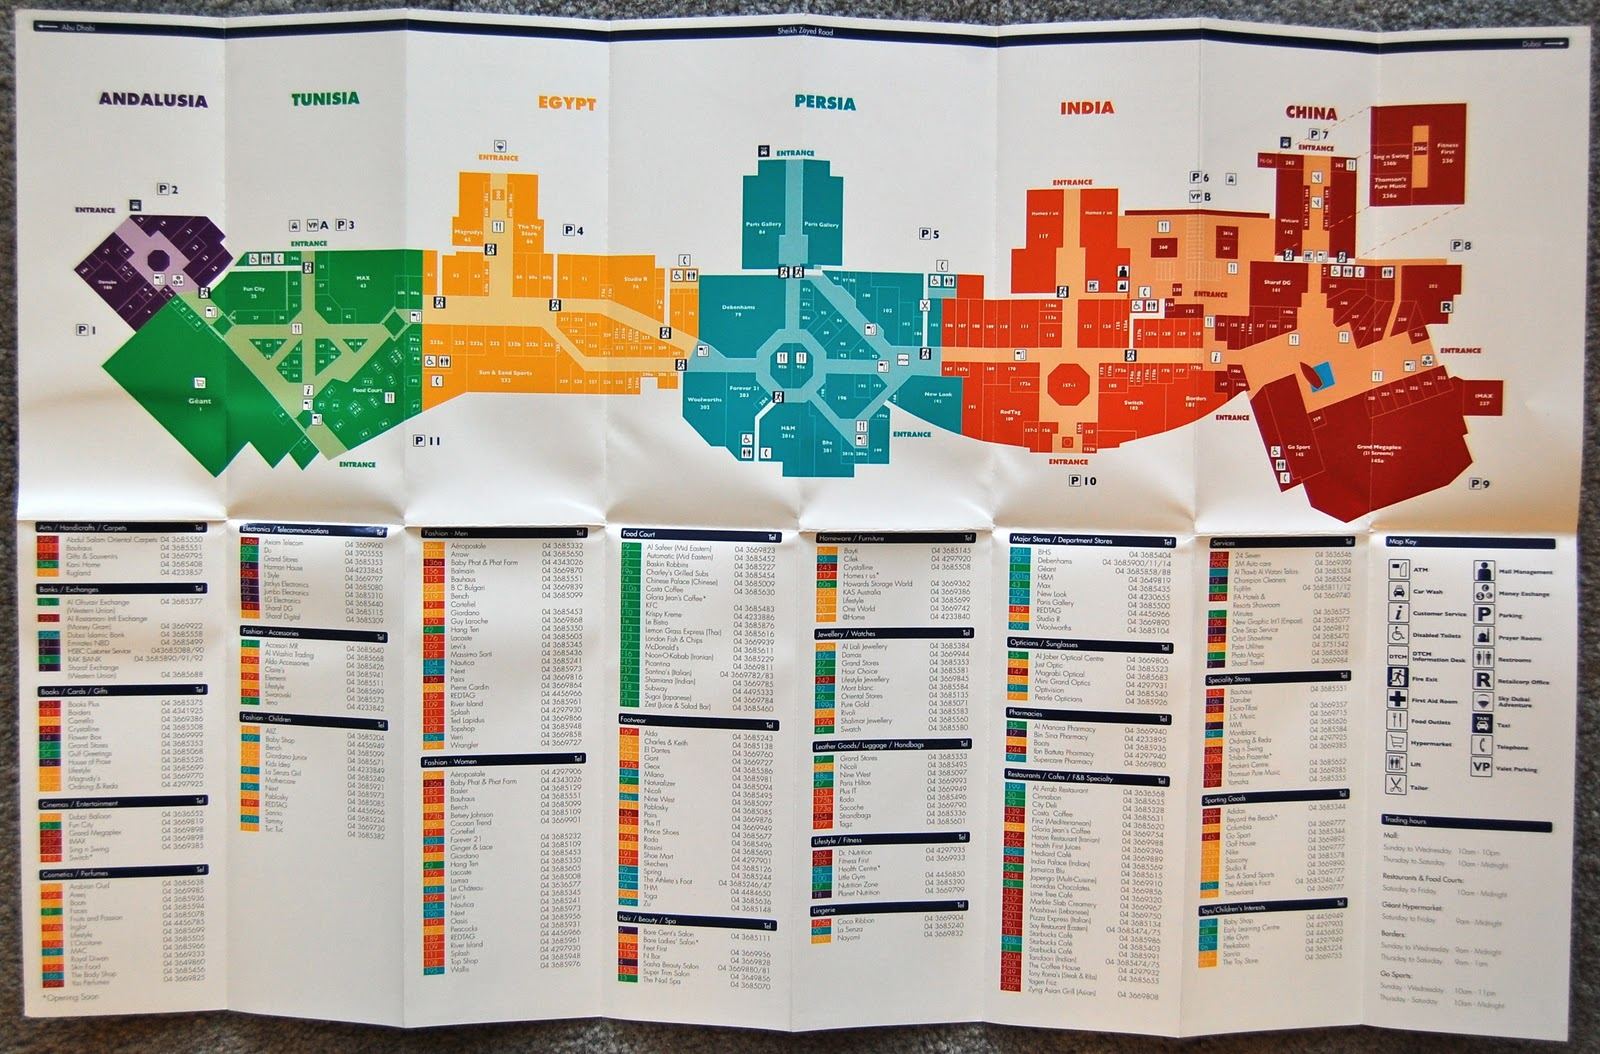 Ibn Battuta Mall map - notice the themed courts are color coded.